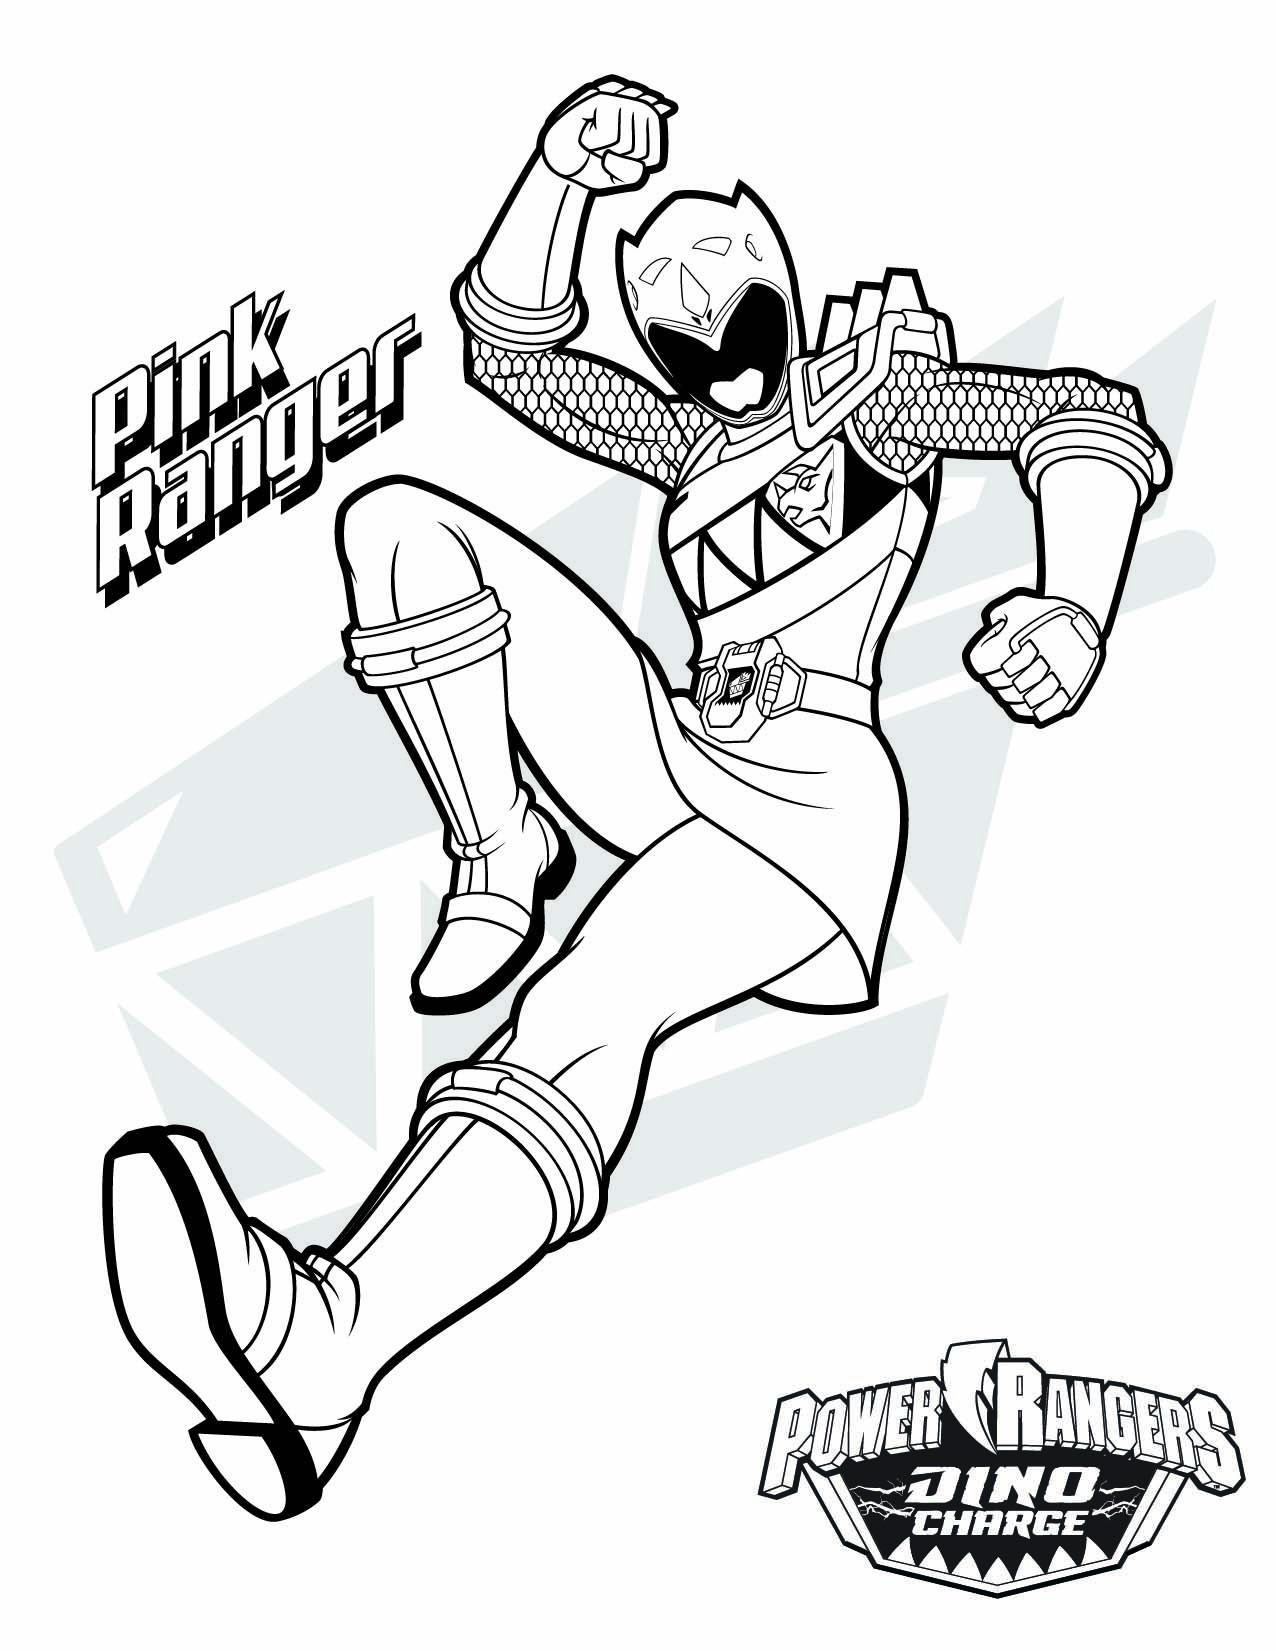 Pin by Power Rangers on Power Rangers Coloring Pages in 2019 ...